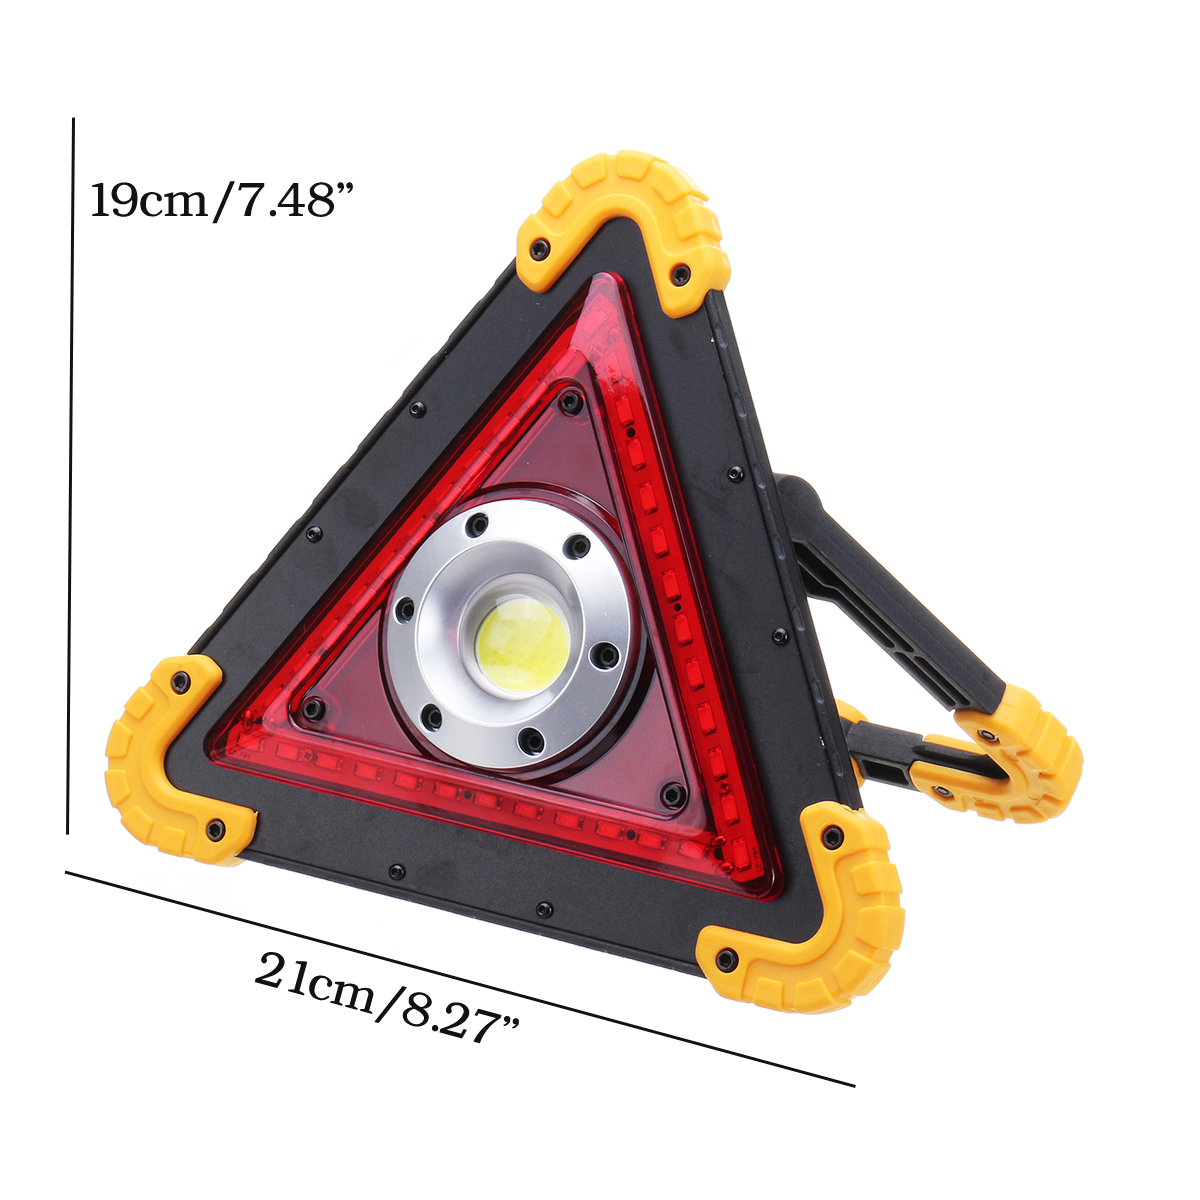 30W 36LED COB Outdoor Camping Lantern USB Hanging Hook Tent Work Light 4 Modes Lamp